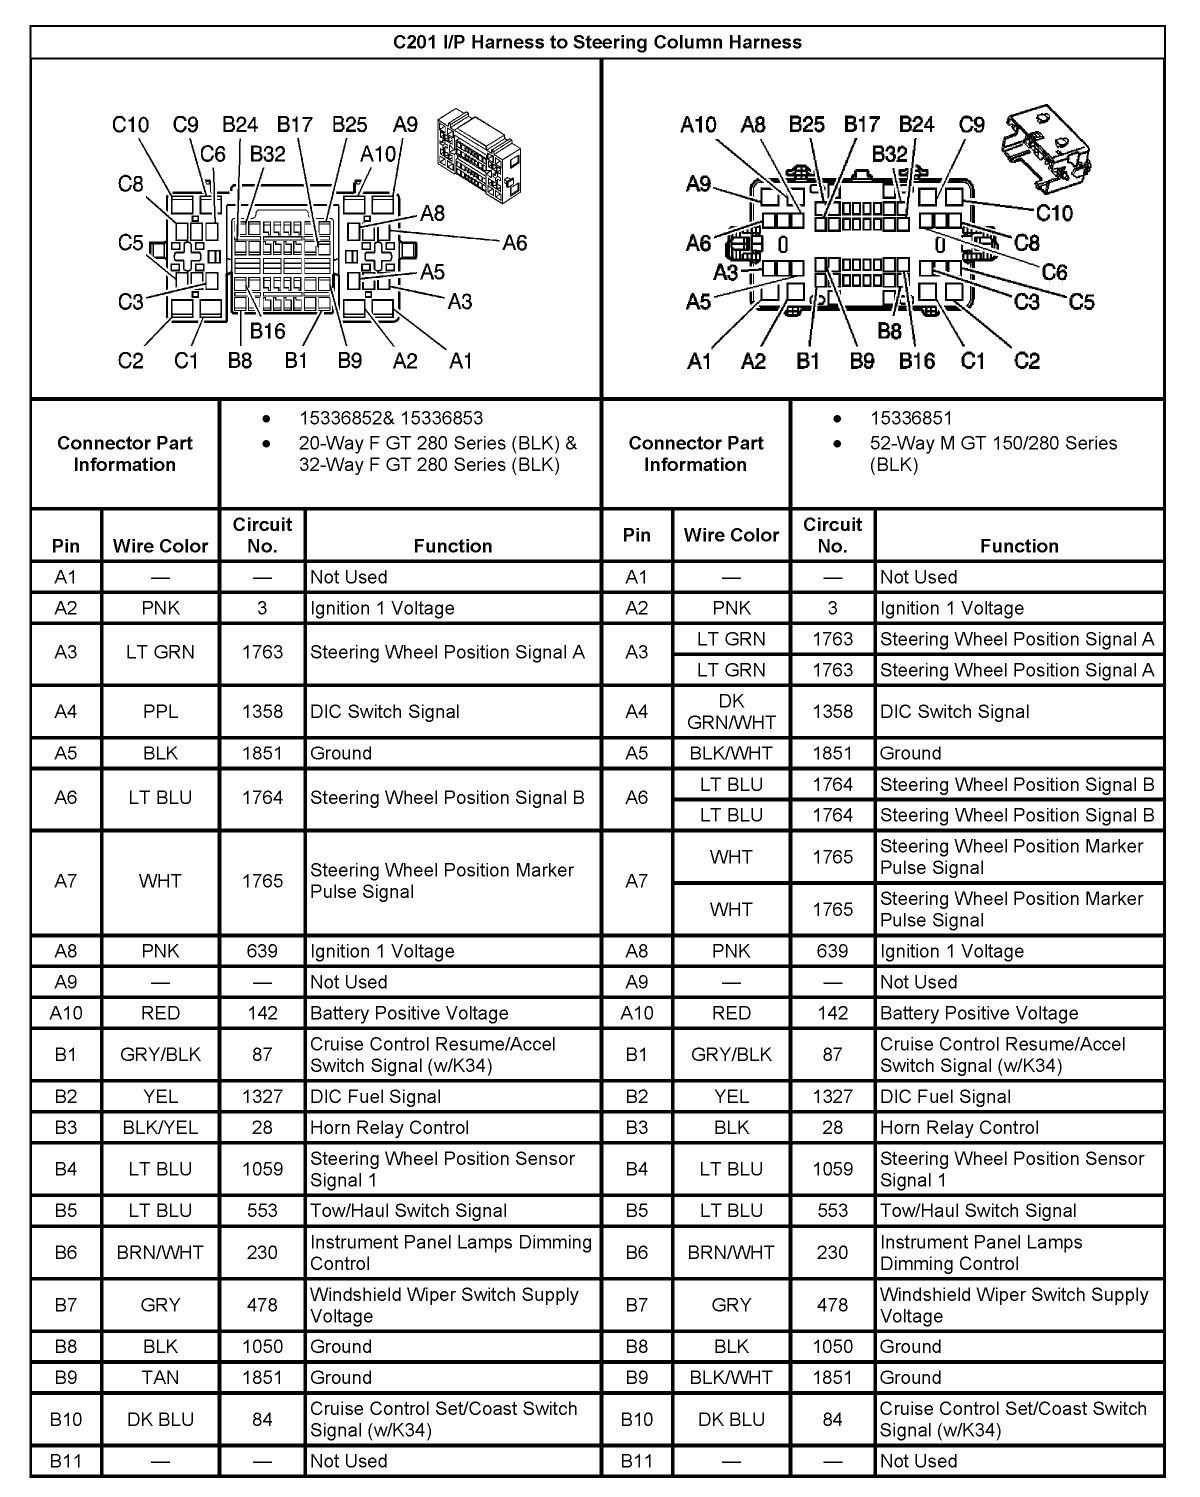 2004 yukon wiring diagram - diagram design sources symbol-peace -  symbol-peace.nius-icbosa.it  nius-icbosa.it